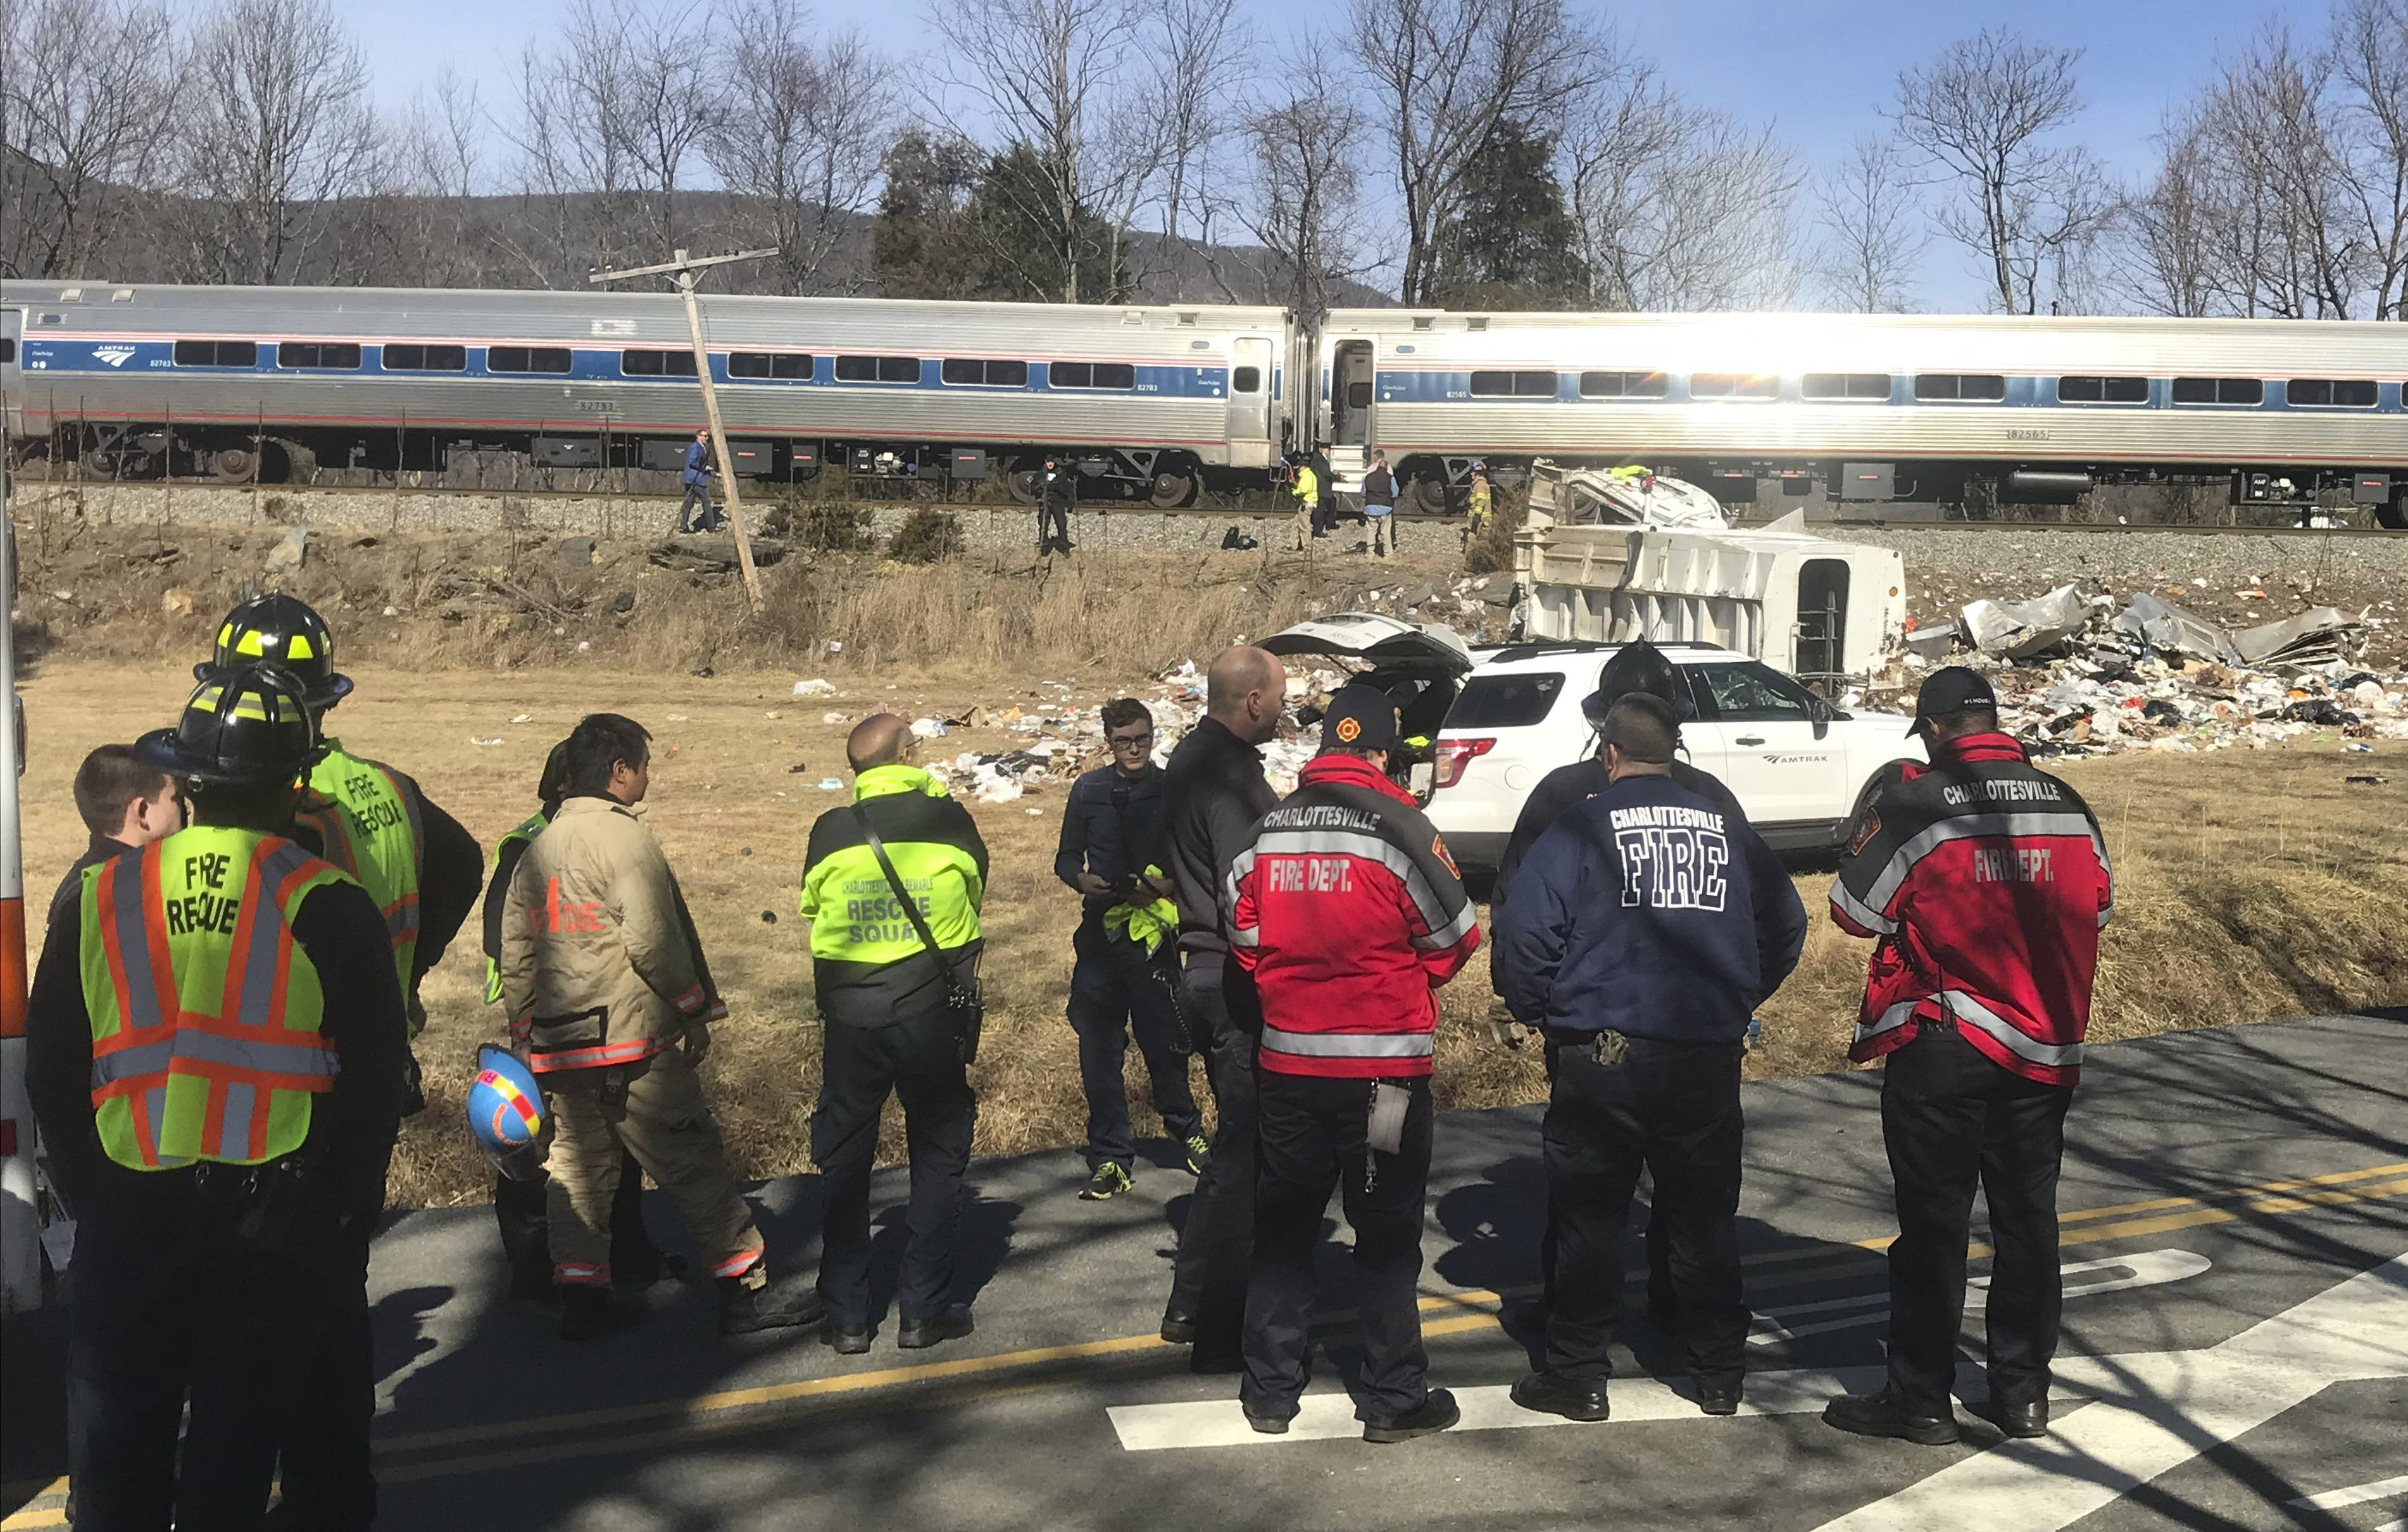 Emergency personnel standby near a chartered train carrying members of Congress after it hit a garbage truck in Crozet, Va., Wednesday, Jan. 31, 2018. No lawmakers were believed injured.   (Zack Wajsgrasu/The Daily Progress via AP)